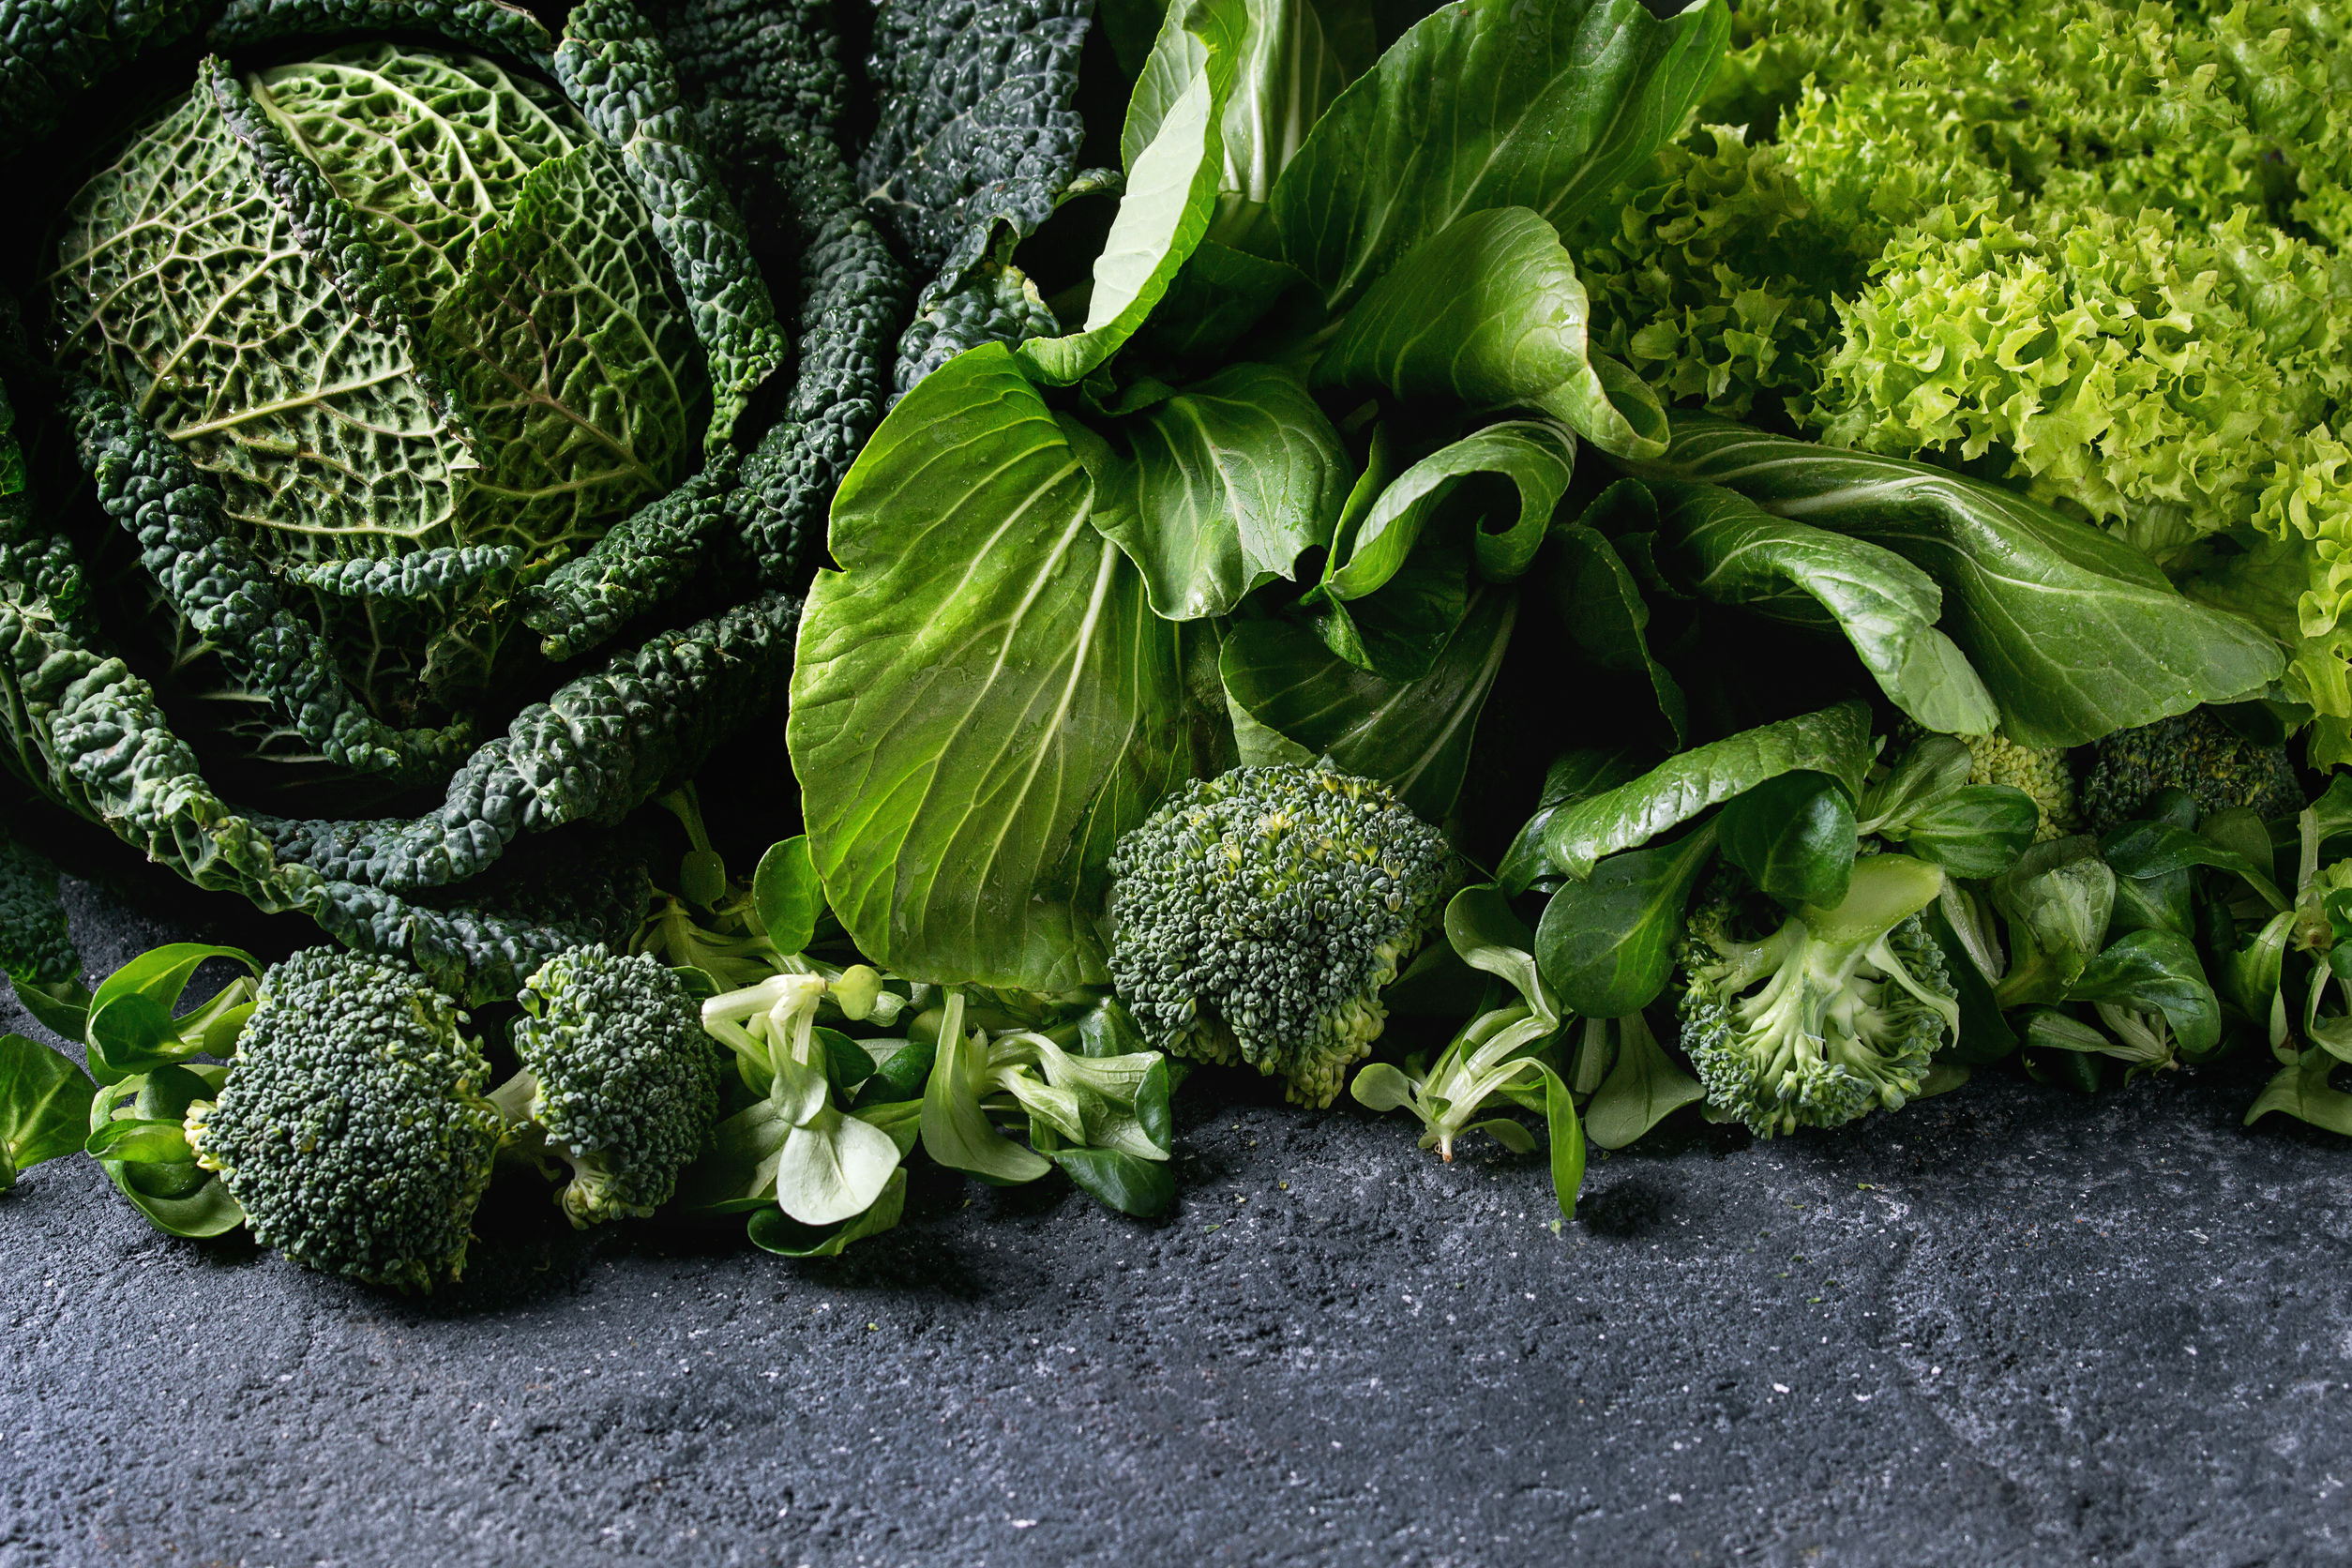 Leafy Greens In Your Diet